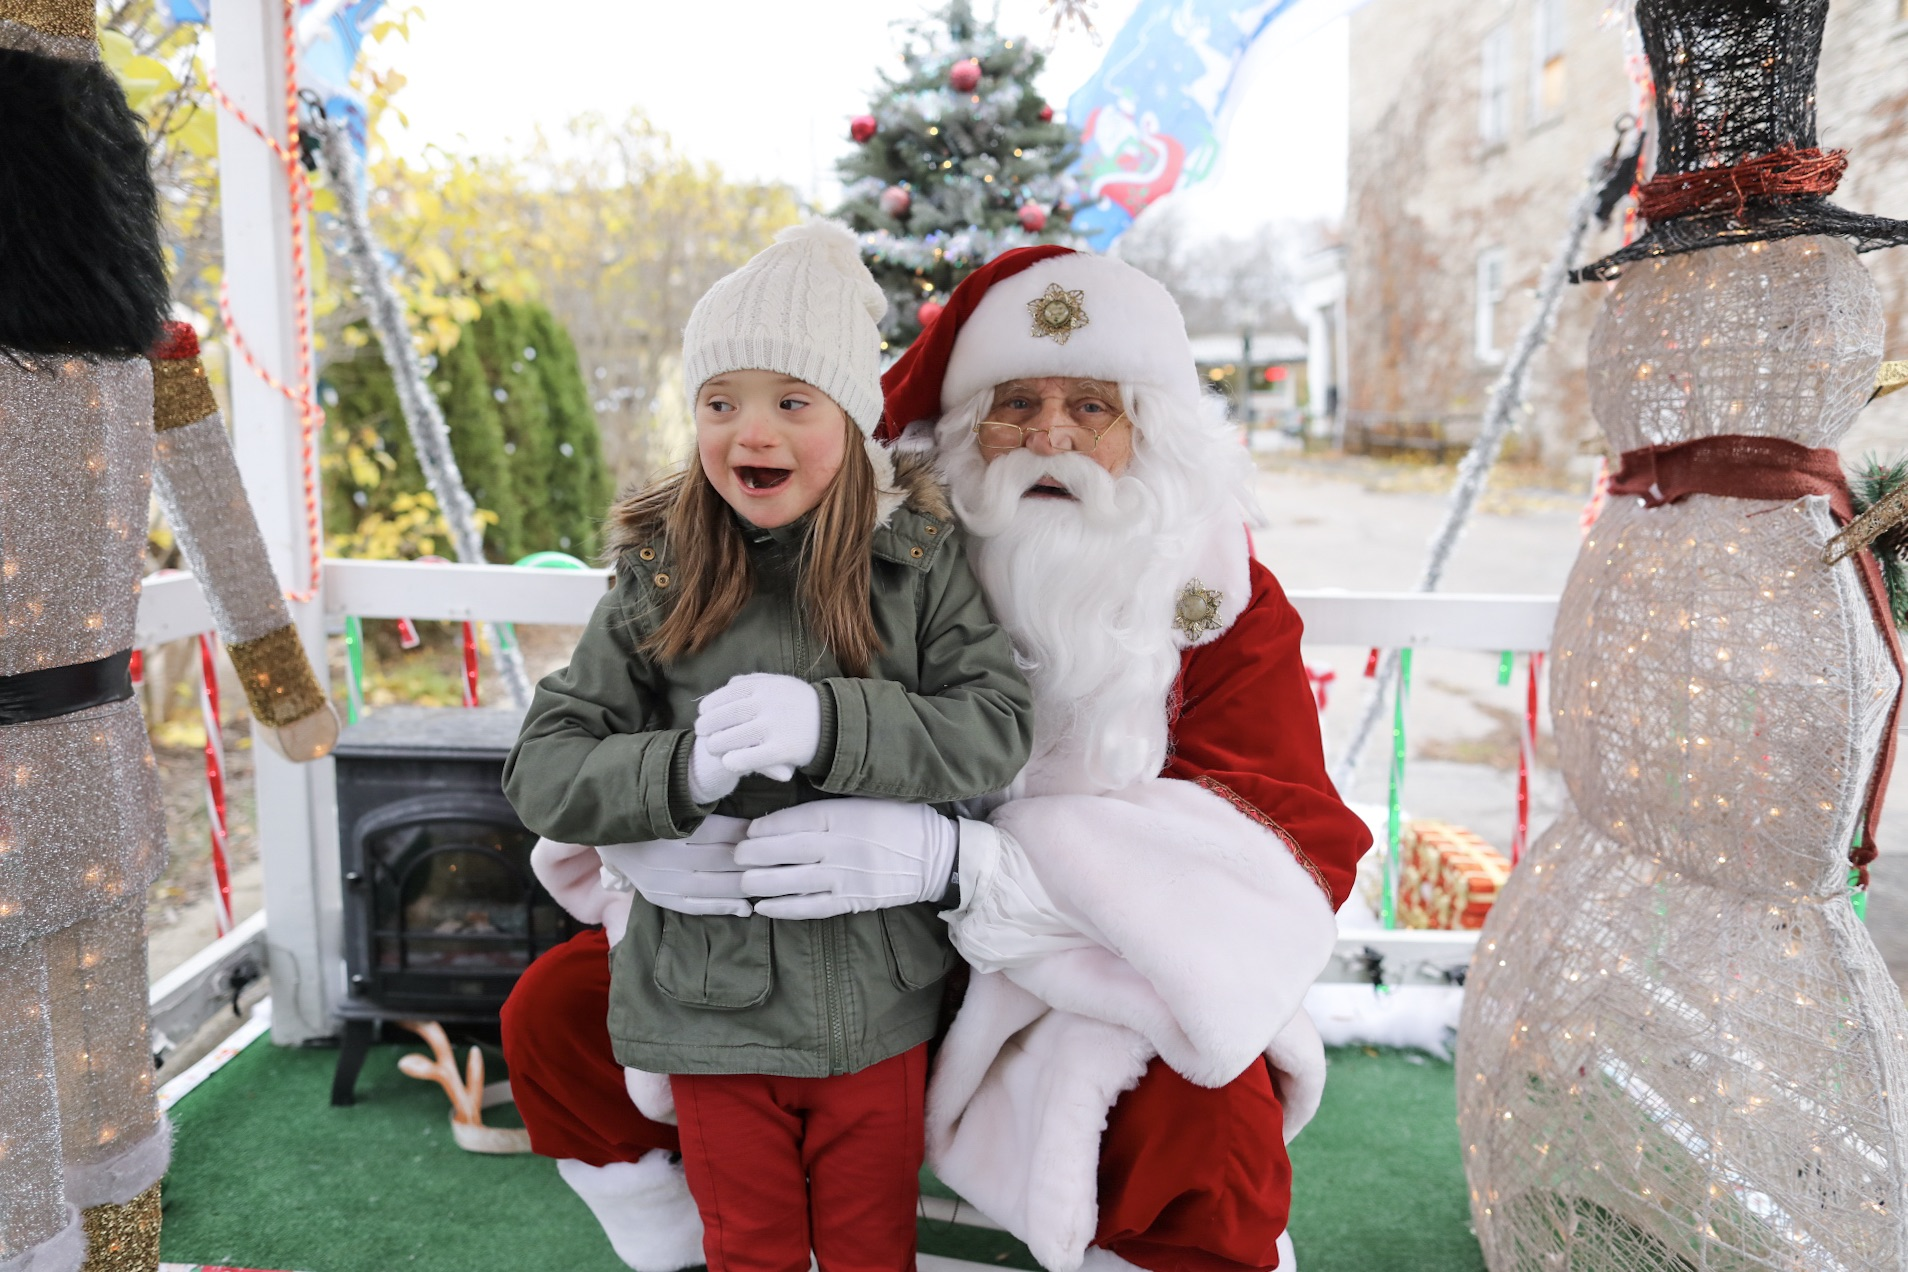 """Six-year-old Lyla Dolly stands next to Santa Claus on Dec. 3, 2016 in Lewiston, N.Y. Charles """"Vince"""" Canosa, 71, has been dressing up as Santa for 50 years. For the past four years, hundreds of kids at the Lewiston Christmas Walk have told him each year what they want for Christmas. (Photo by Jessica Dolly)"""